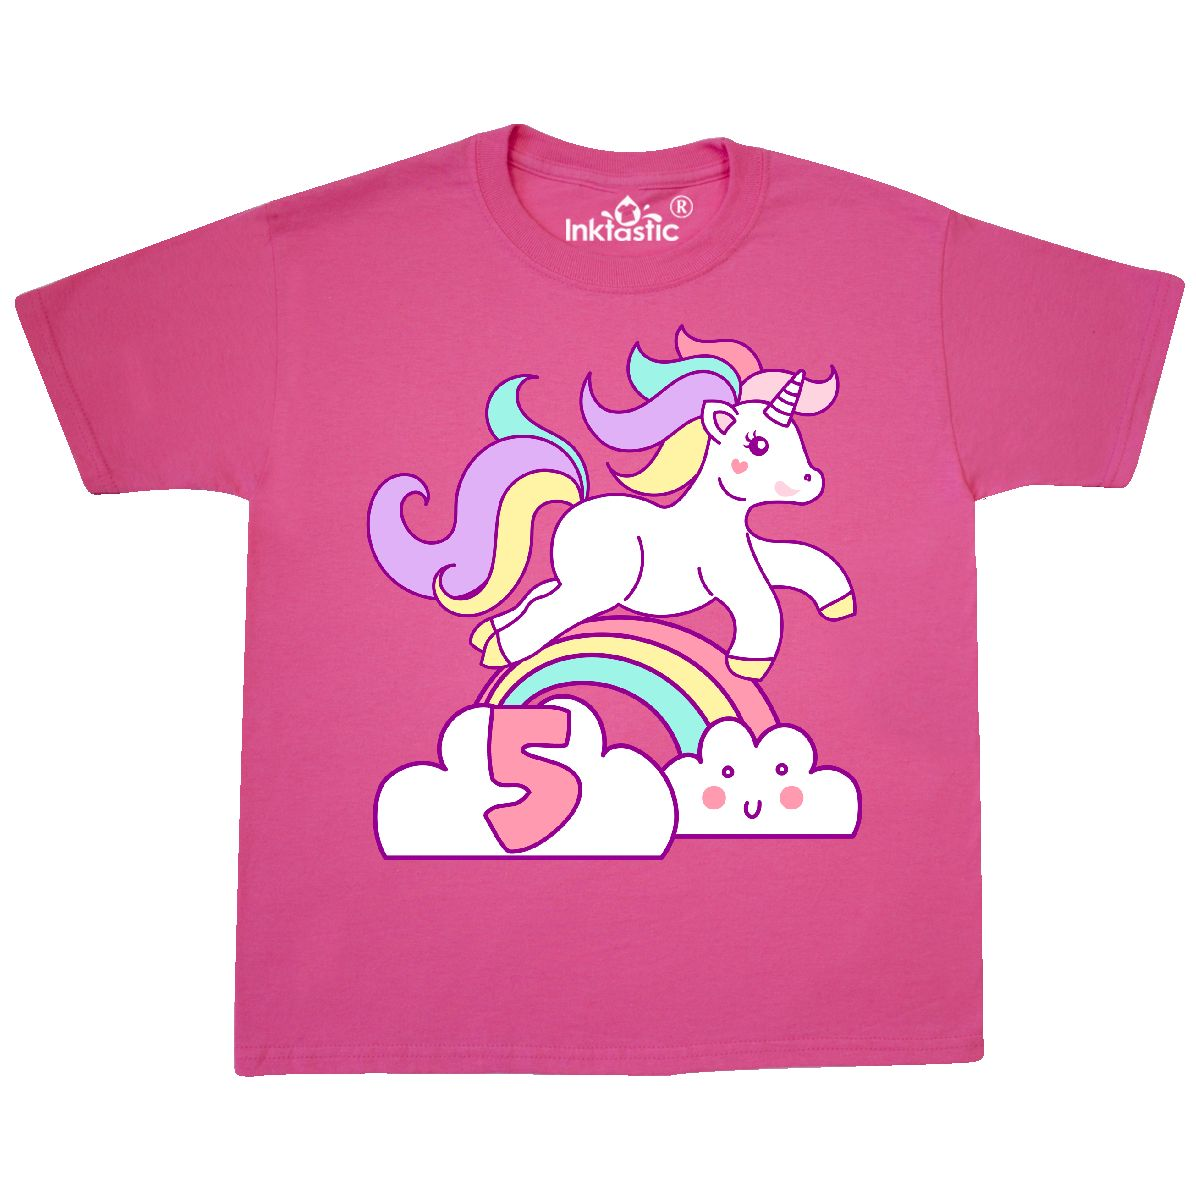 Inktastic Unicorn 5th Birthday Youth T Shirt Bday